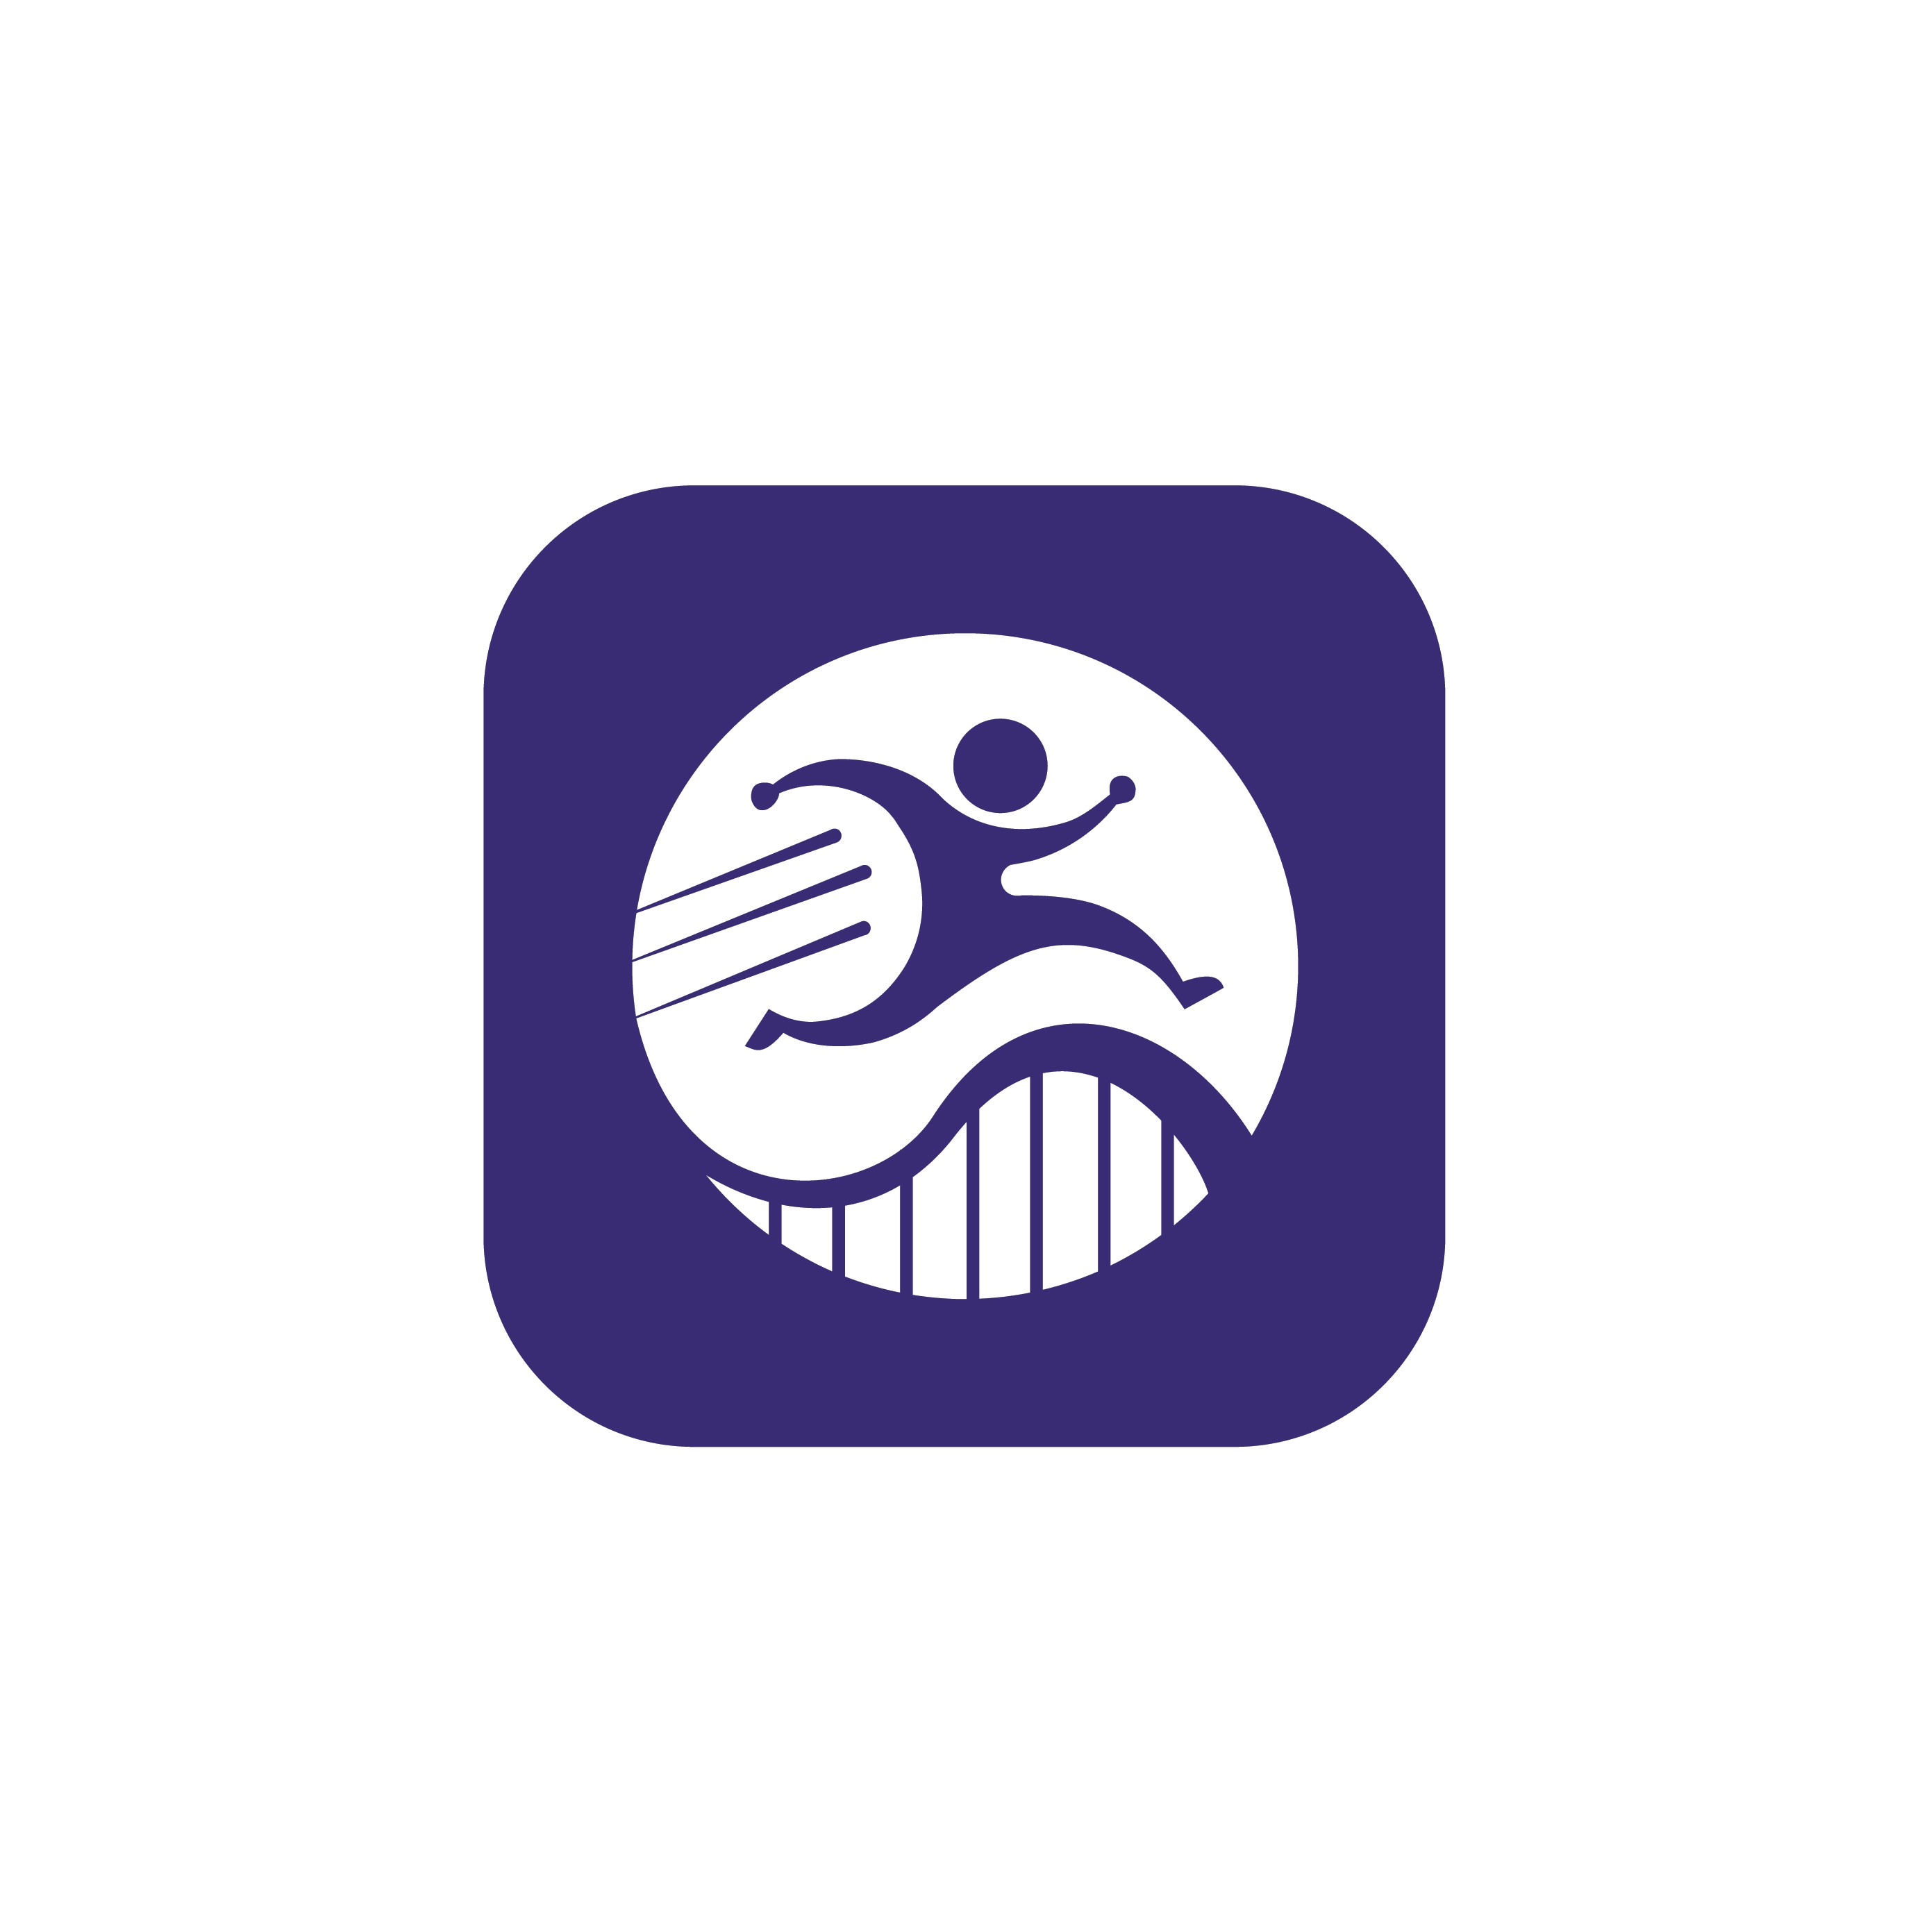 ParkLeap needs a fun and effortless logo and app icon!